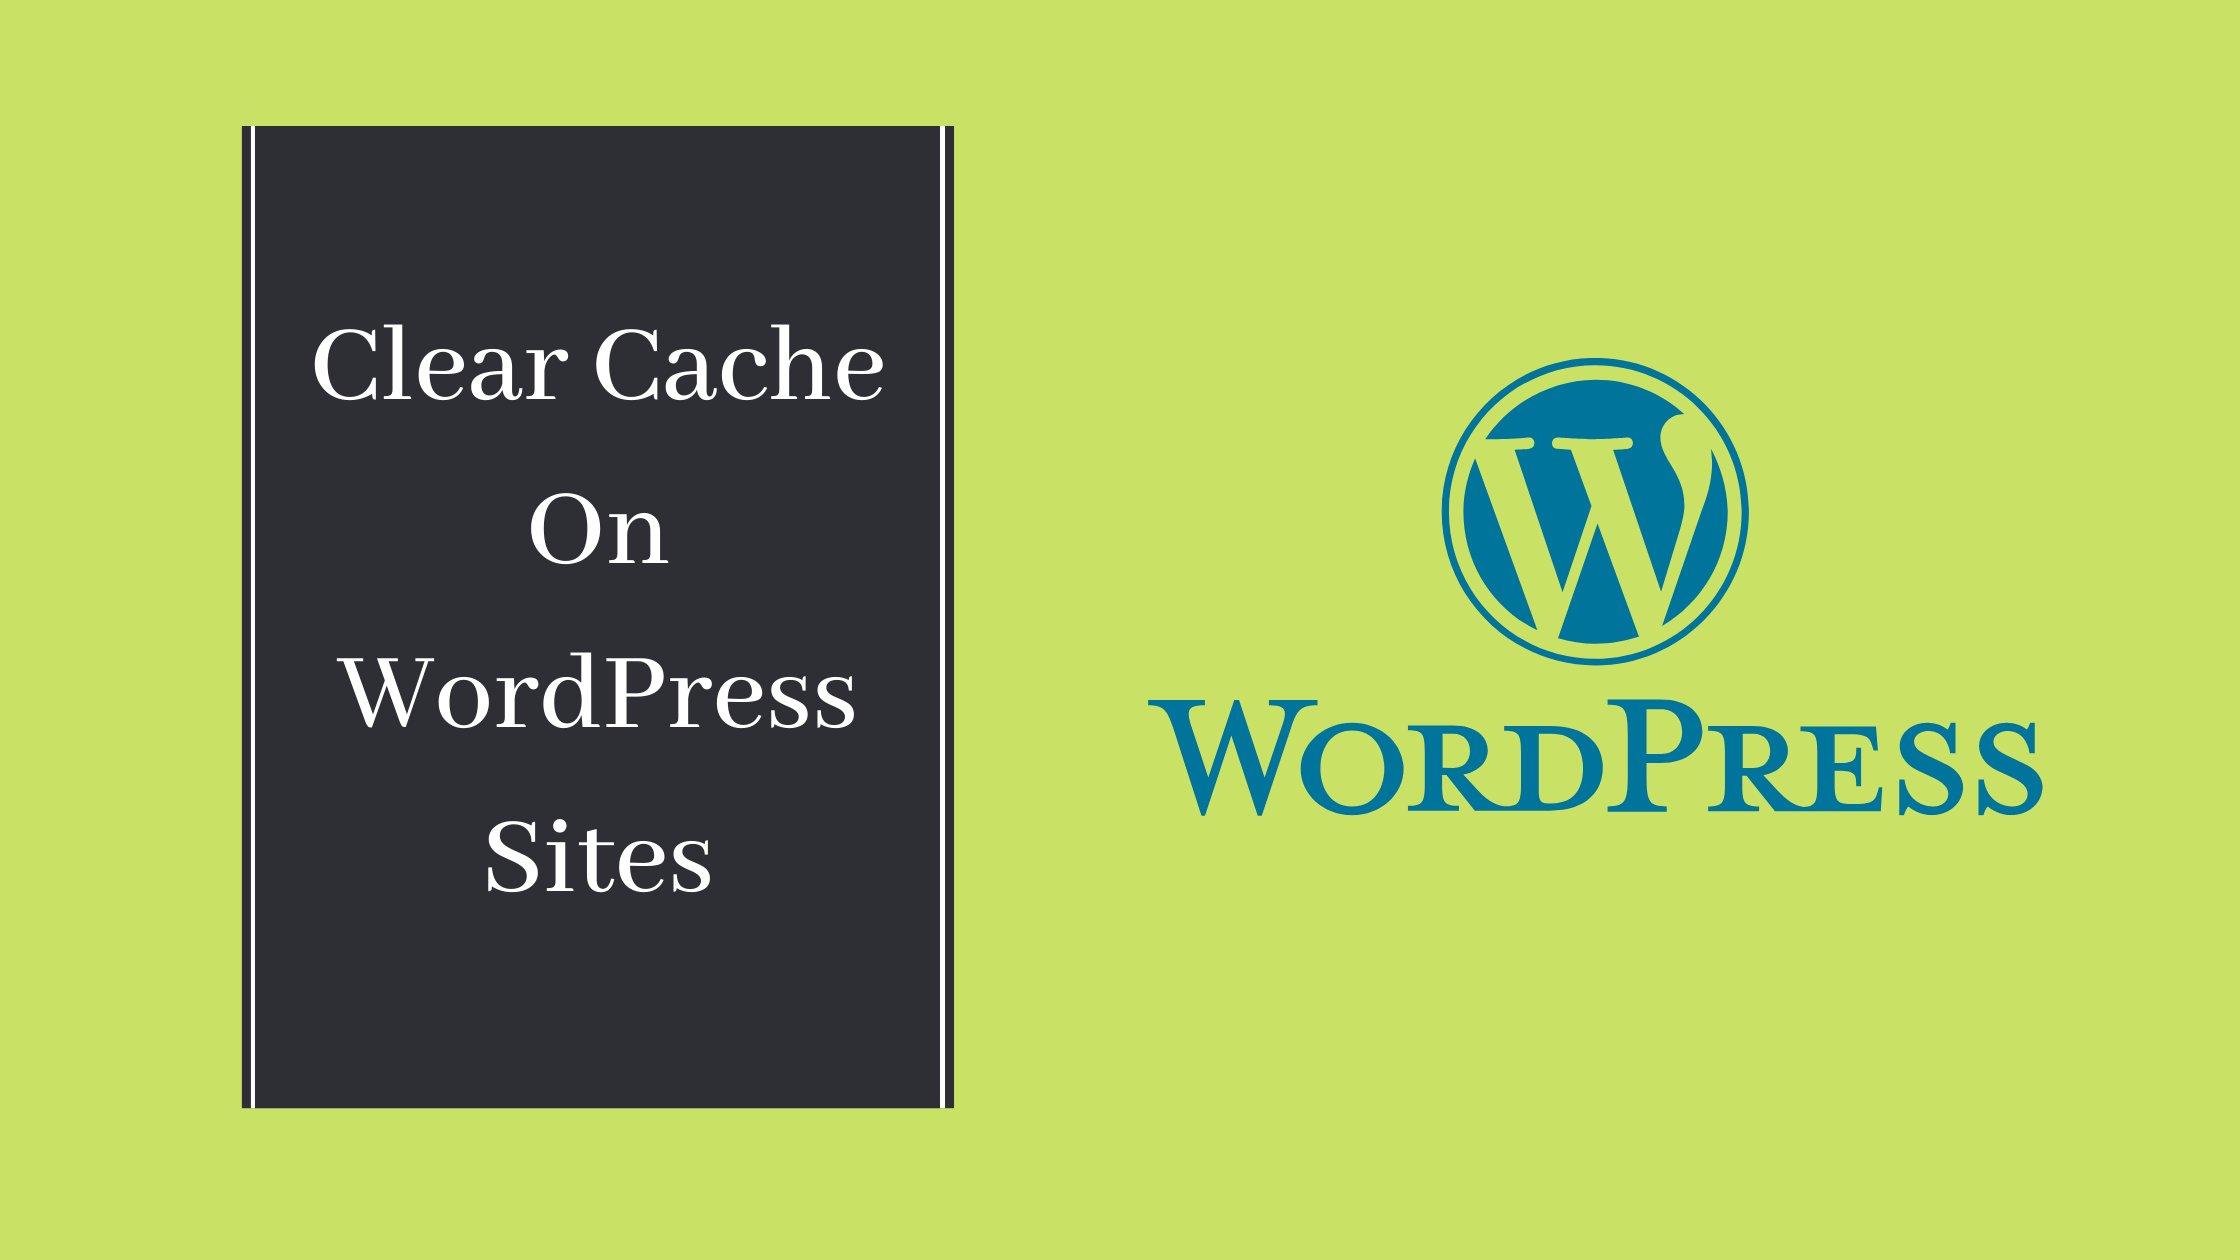 Clear cache on WordPress site